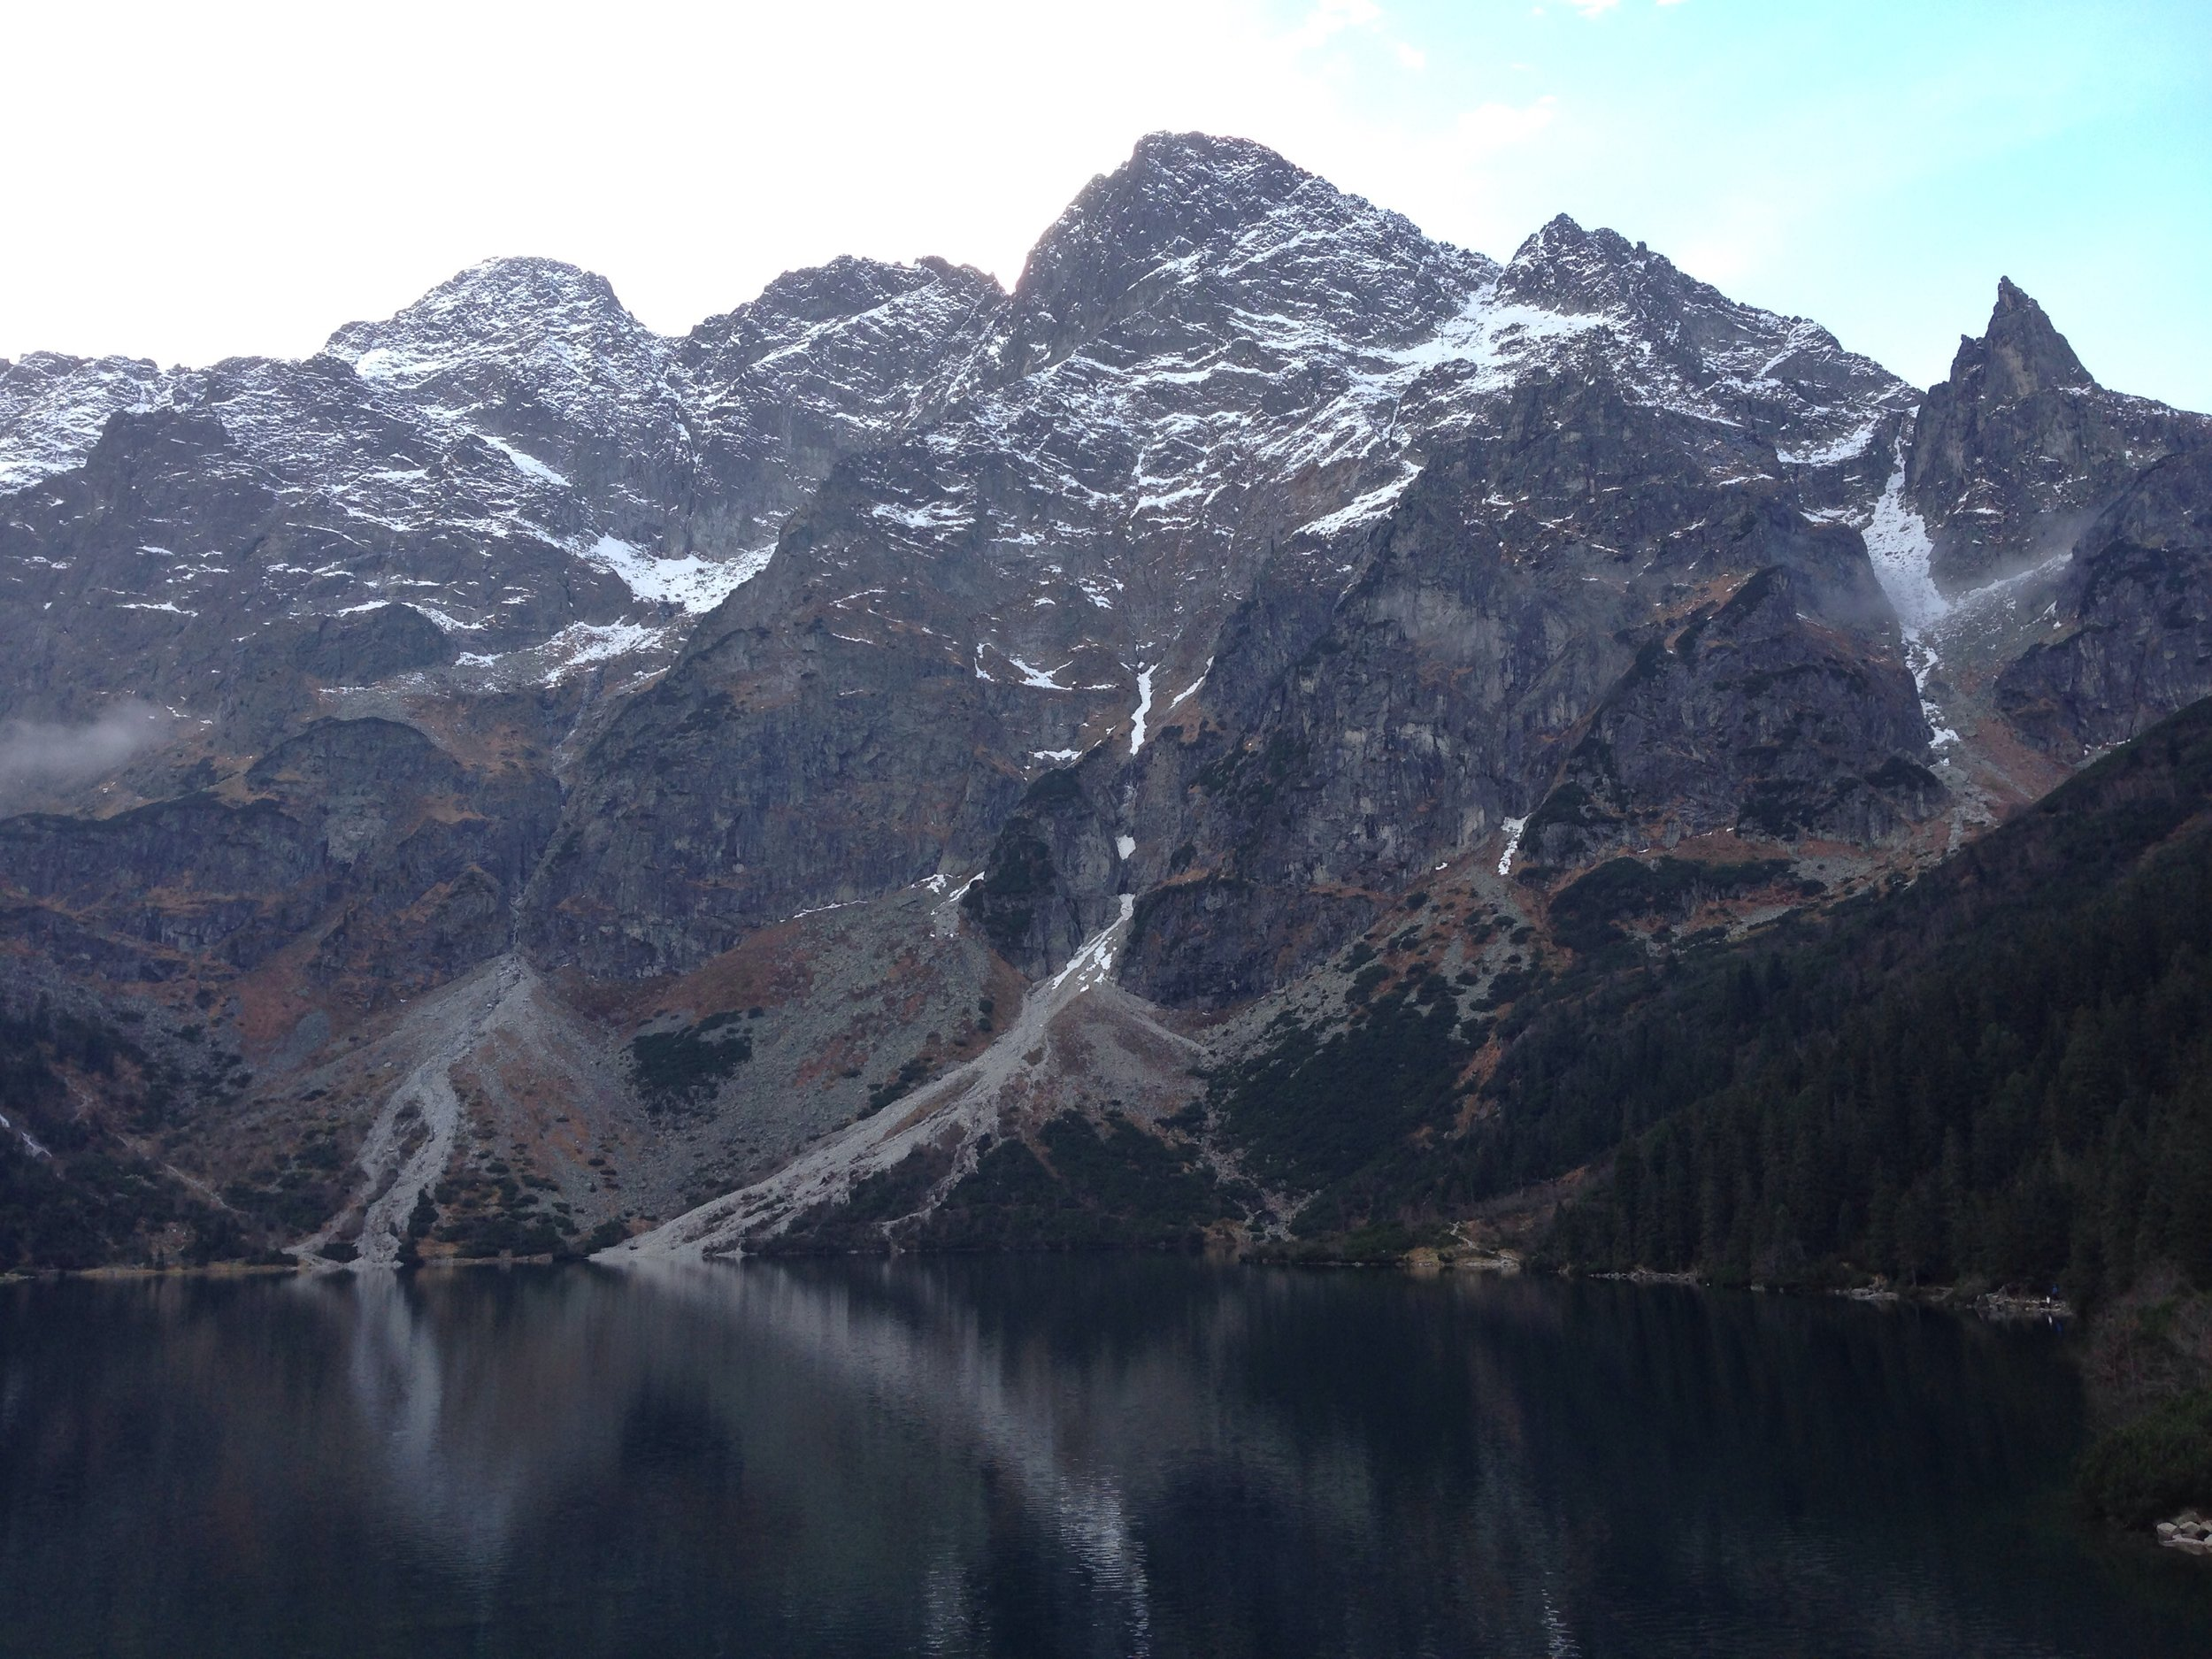 Morski Oko, with the Tatra Mountains in the background